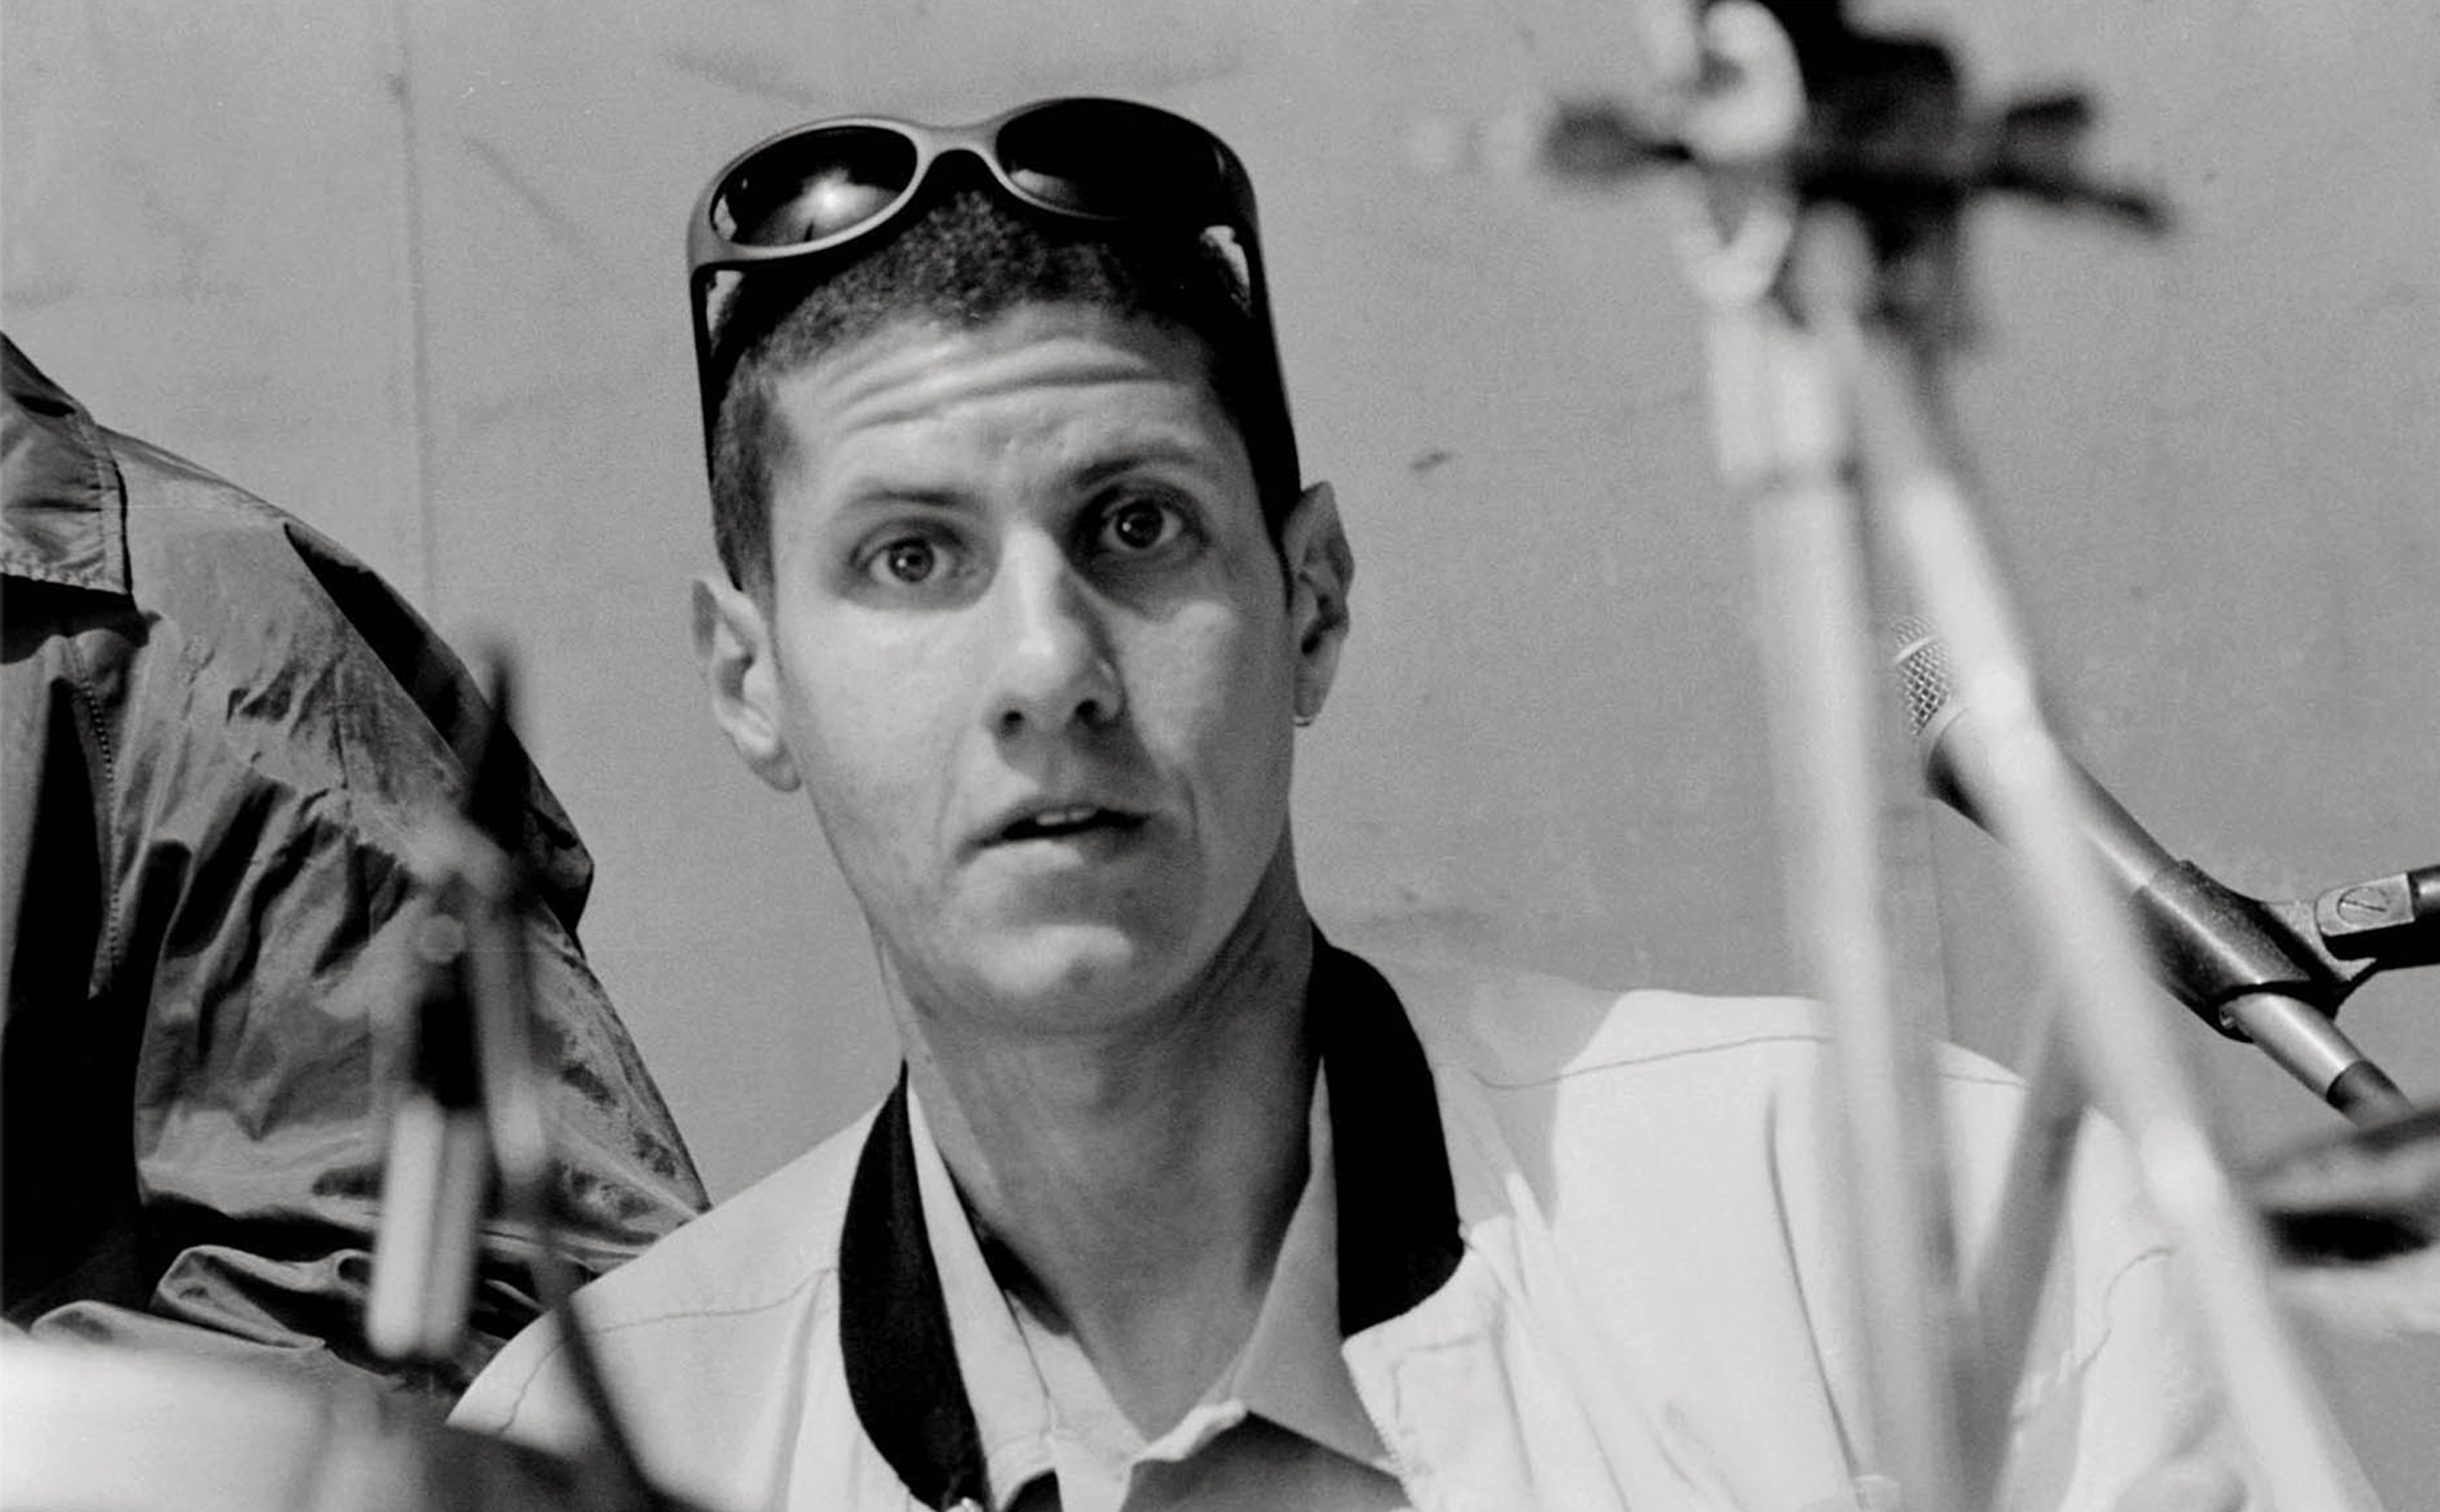 Mike D, 6/15/96